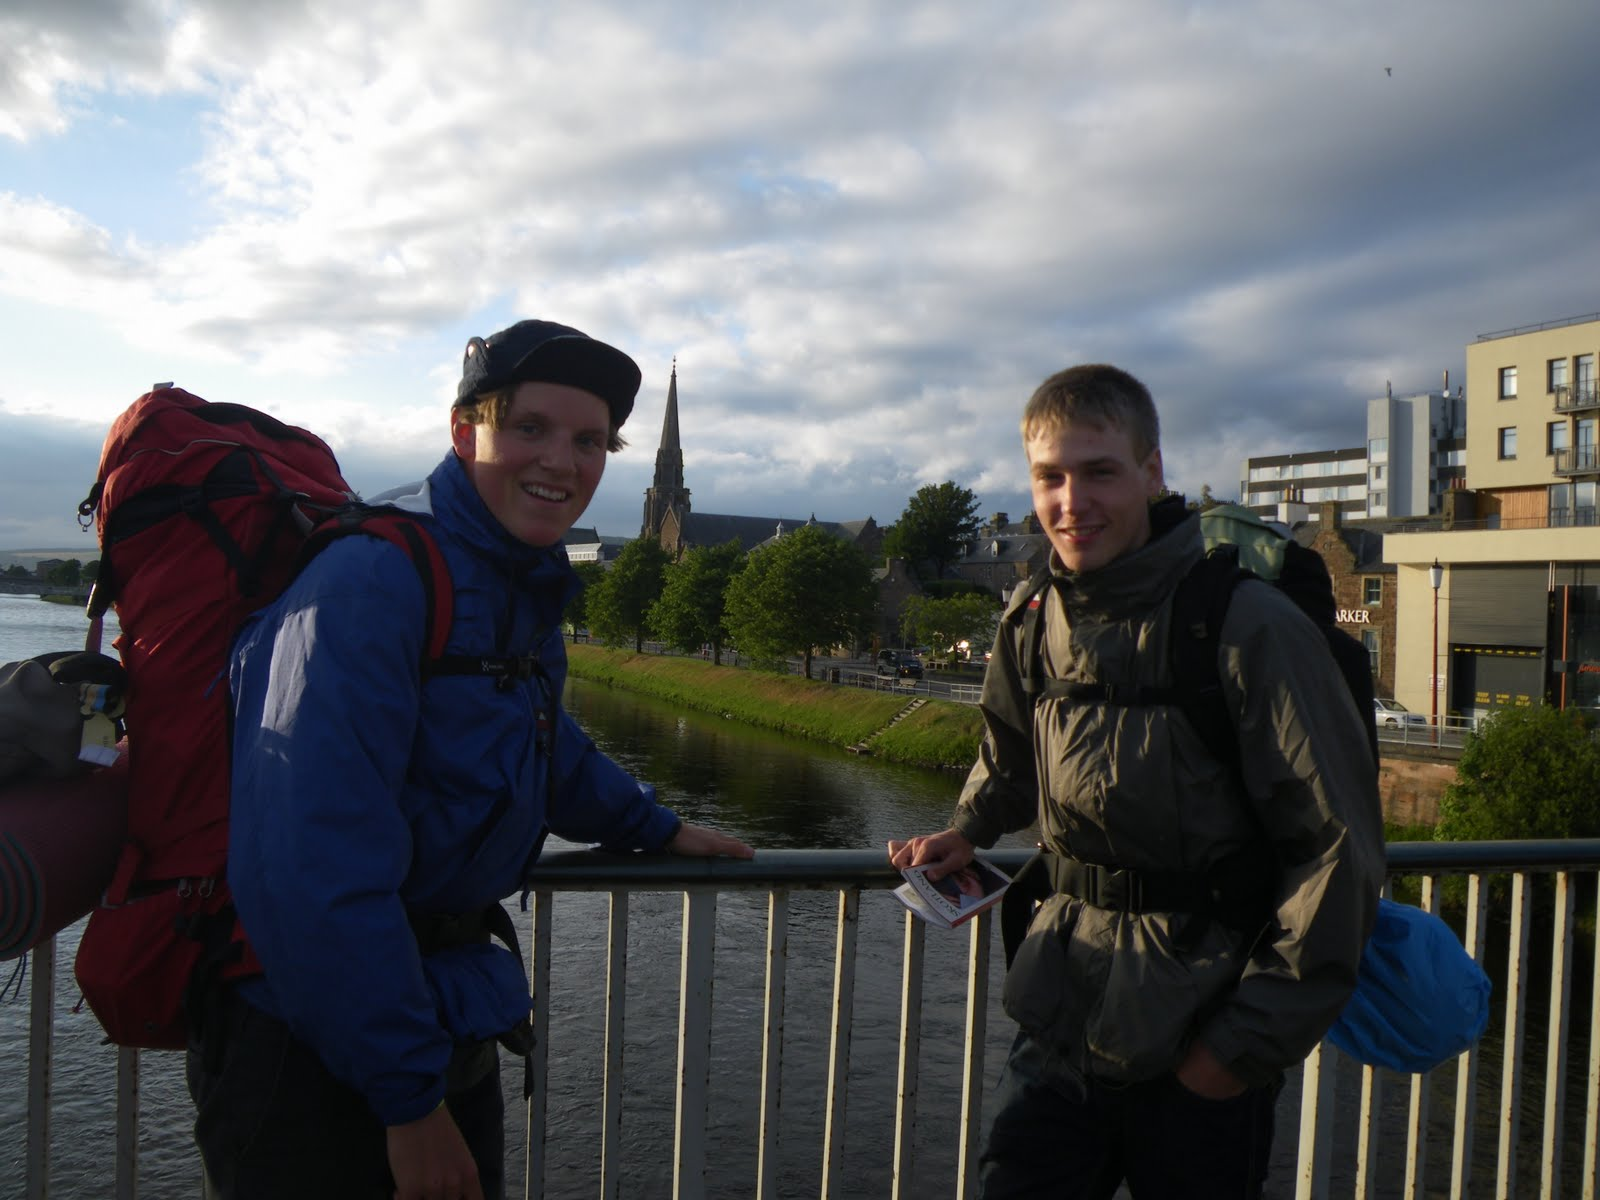 Just arrived in Inverness overlooking the river Where: Inverness, Scotland